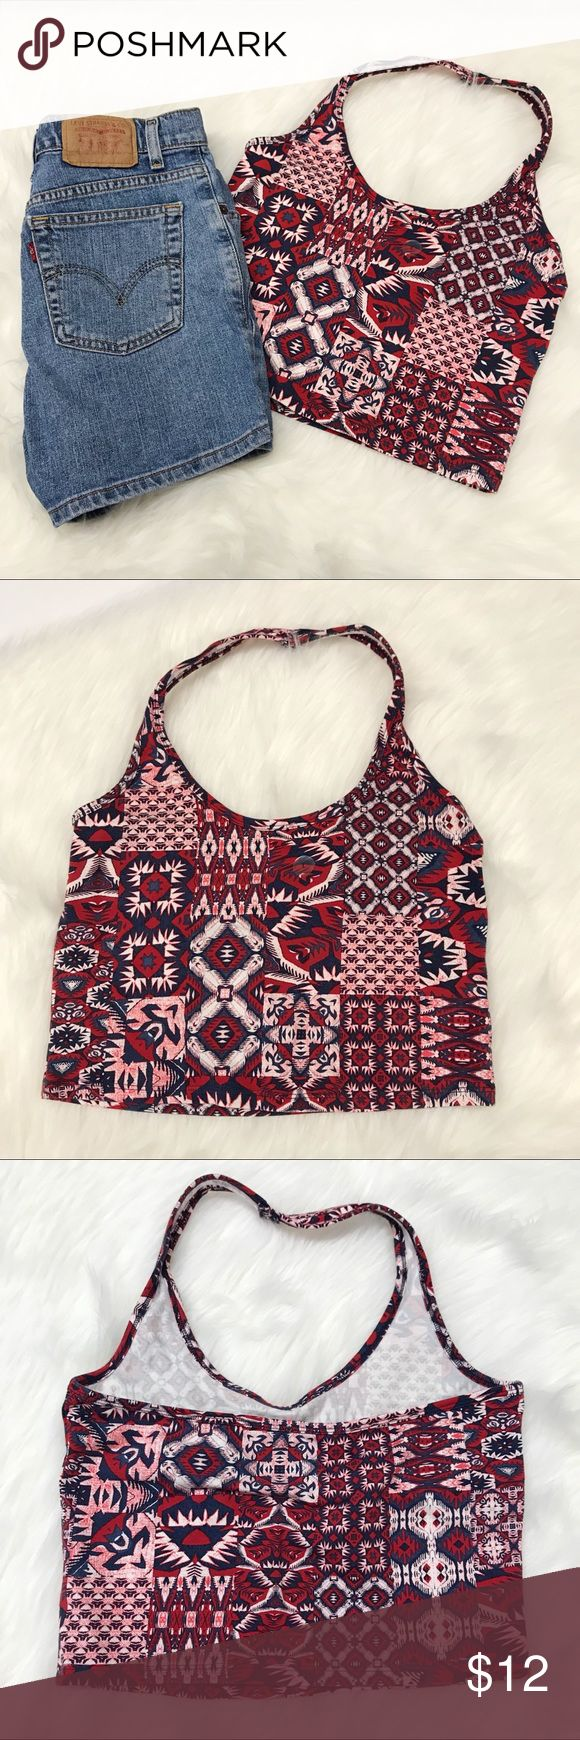 """Aeropostale Halter Crop Top Super cool halter crop top from Aeropostale! Handkerchief print that's perfect for summer. New with tags, never worn. Comes from a smoke and pet free home. Measurements taken laid flat: 14 1/2"""" bust. 14 1/2"""" waist. 18"""" long. Aeropostale Tops Crop Tops"""